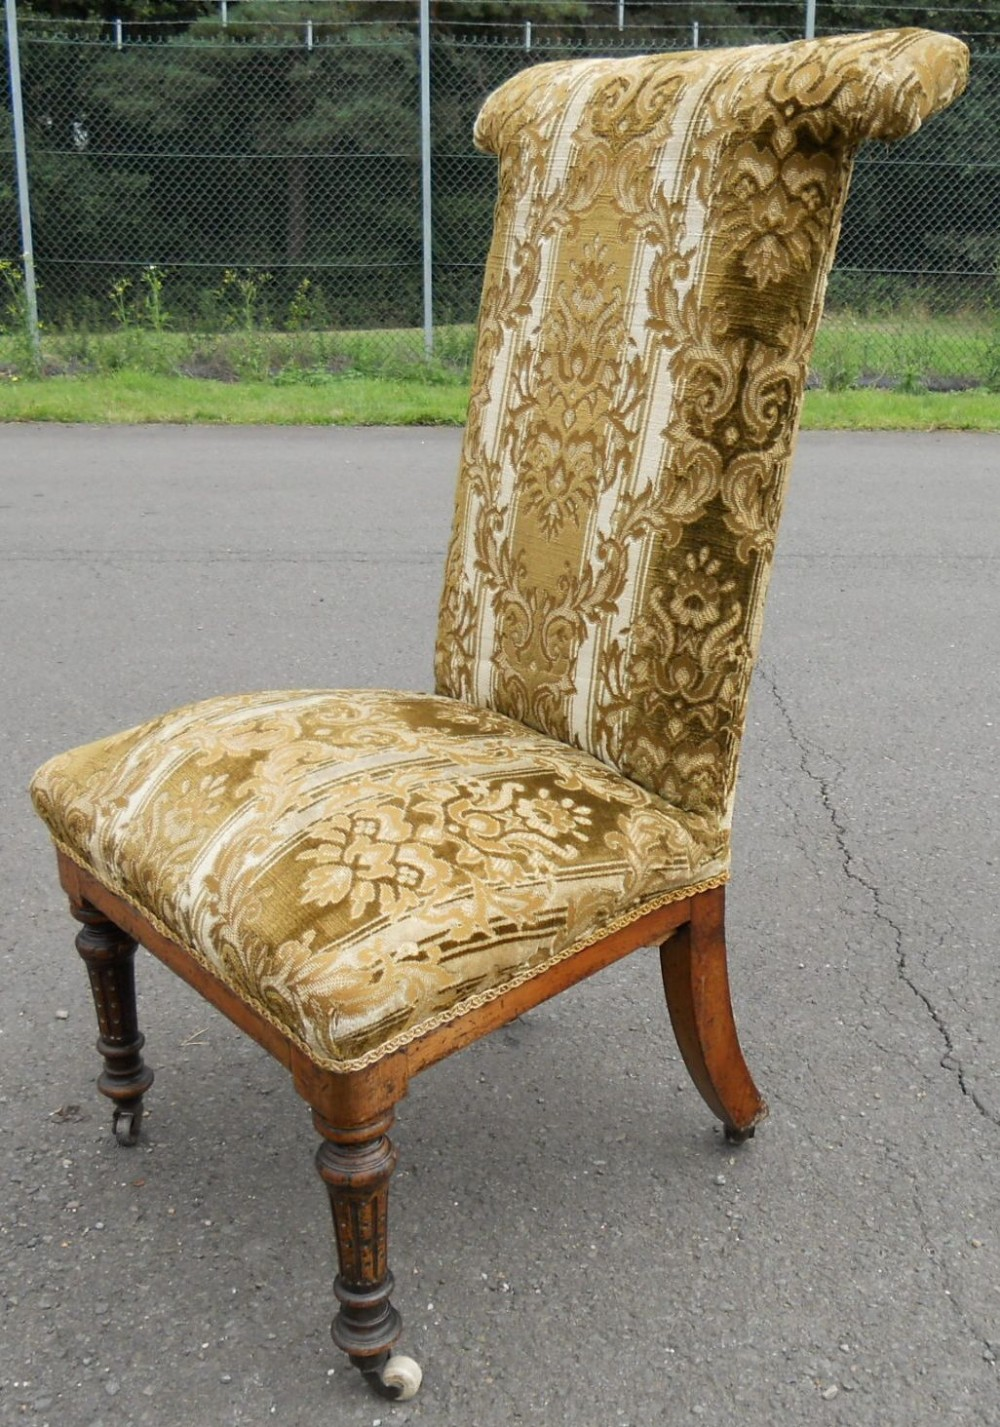 victorian upholstered prayer chair - Victorian Upholstered Prayer Chair 239071 Sellingantiques.co.uk